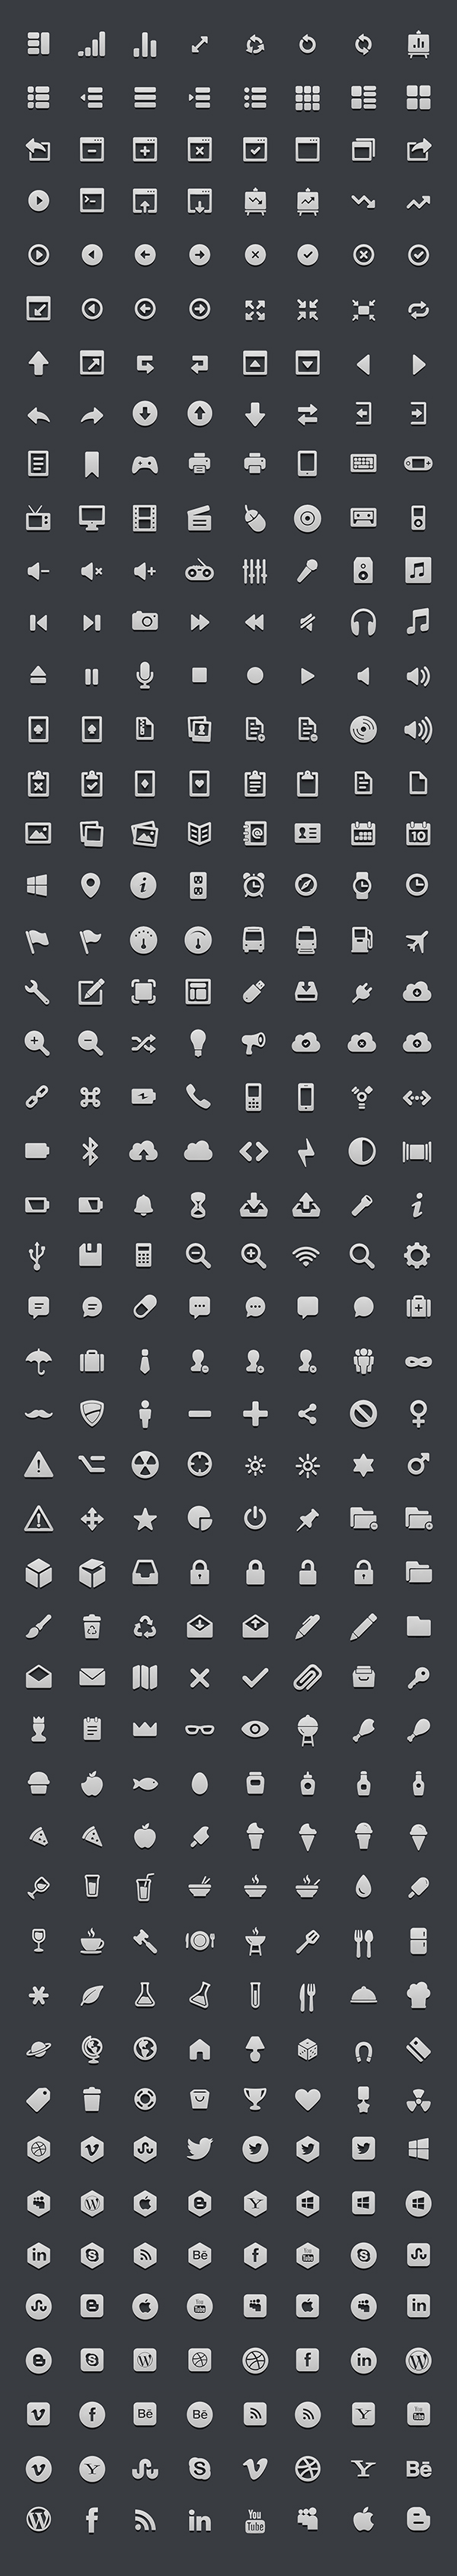 364 High-res 3D Icon Set